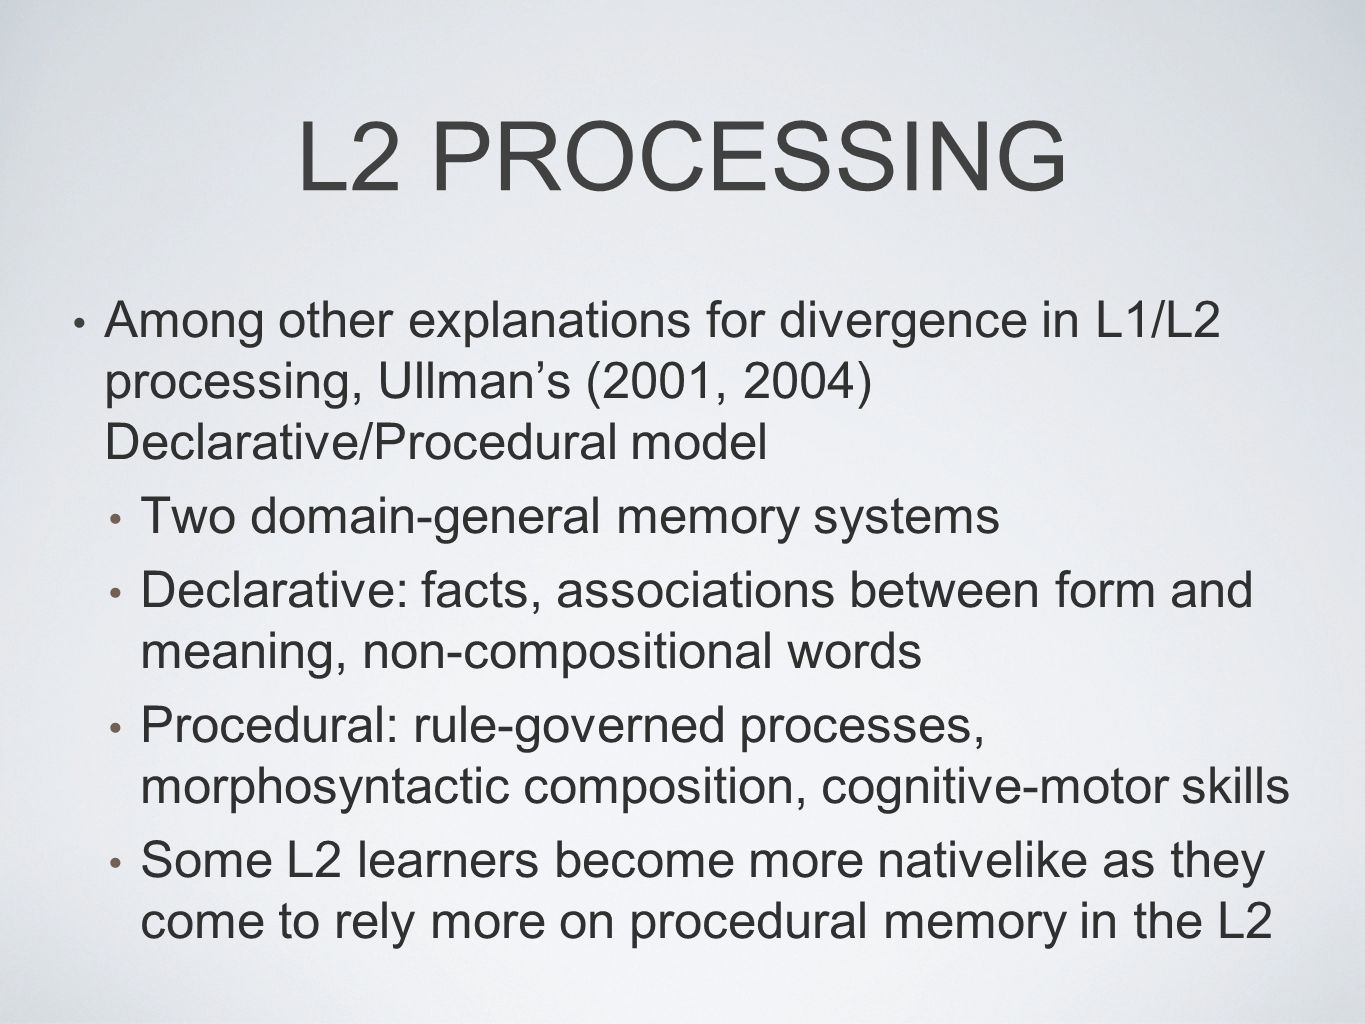 L2 PROCESSING Among other explanations for divergence in L1/L2 processing, Ullman's (2001, 2004) Declarative/Procedural model.